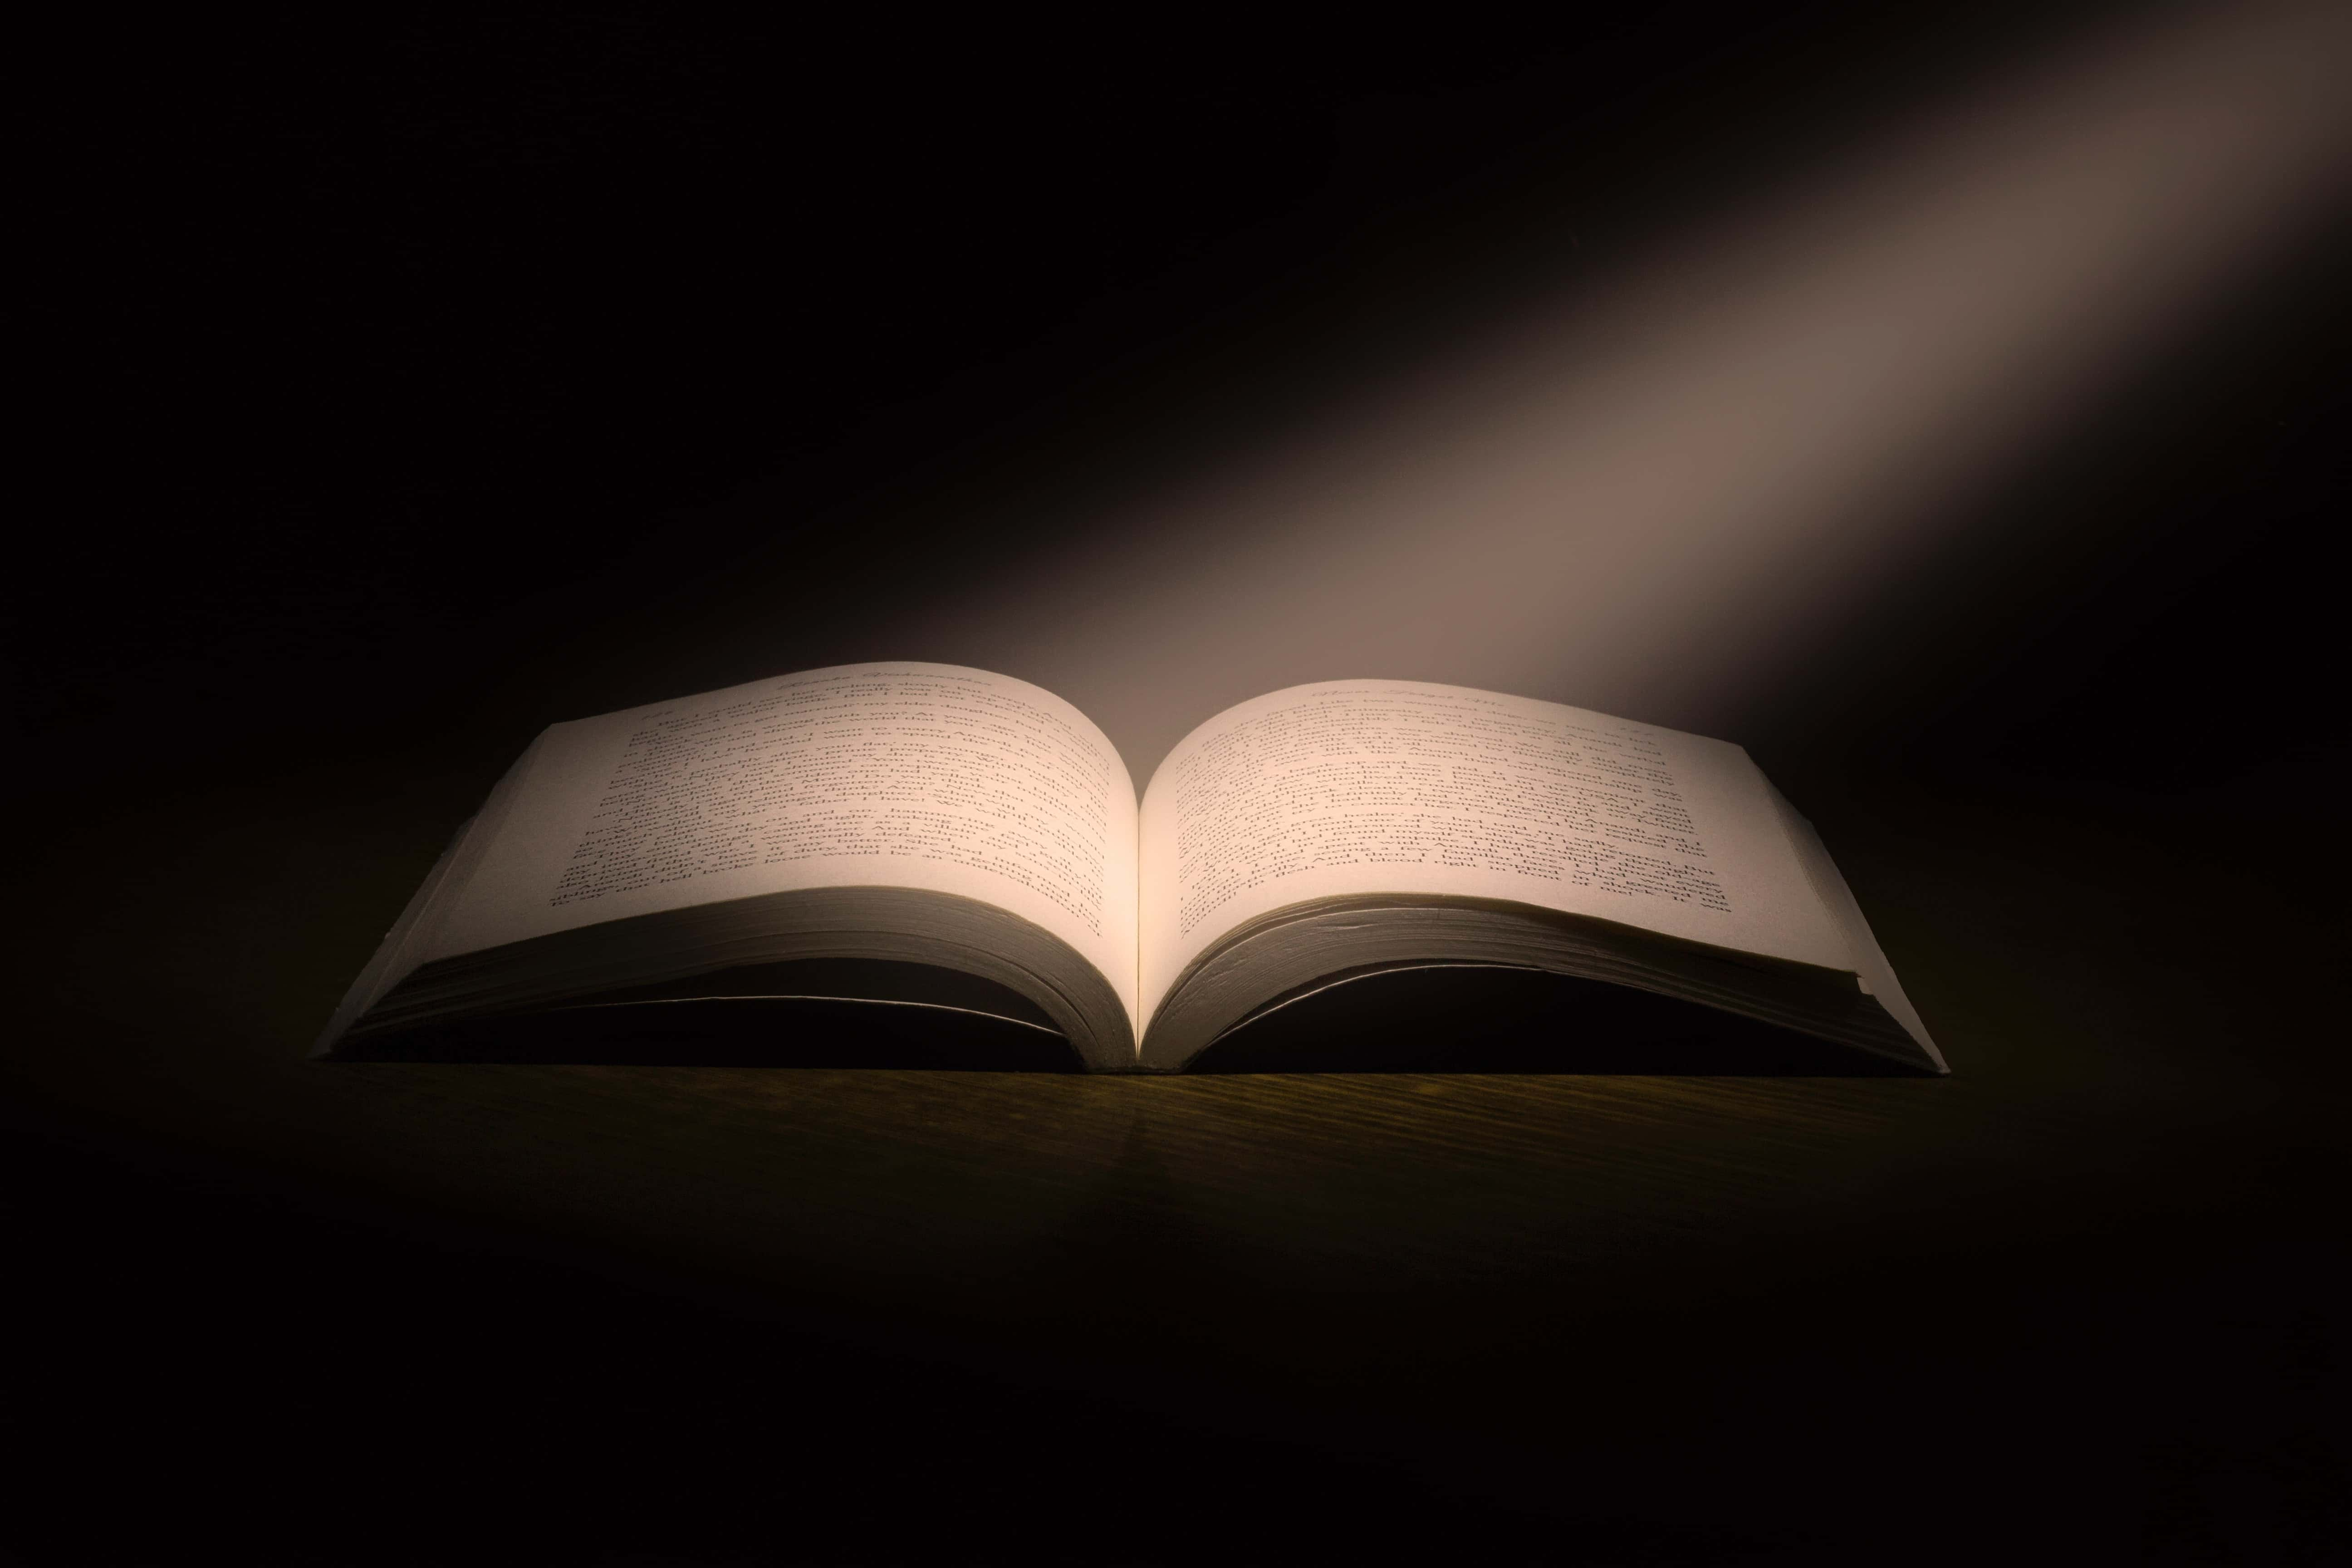 A Book with Light Shining on it